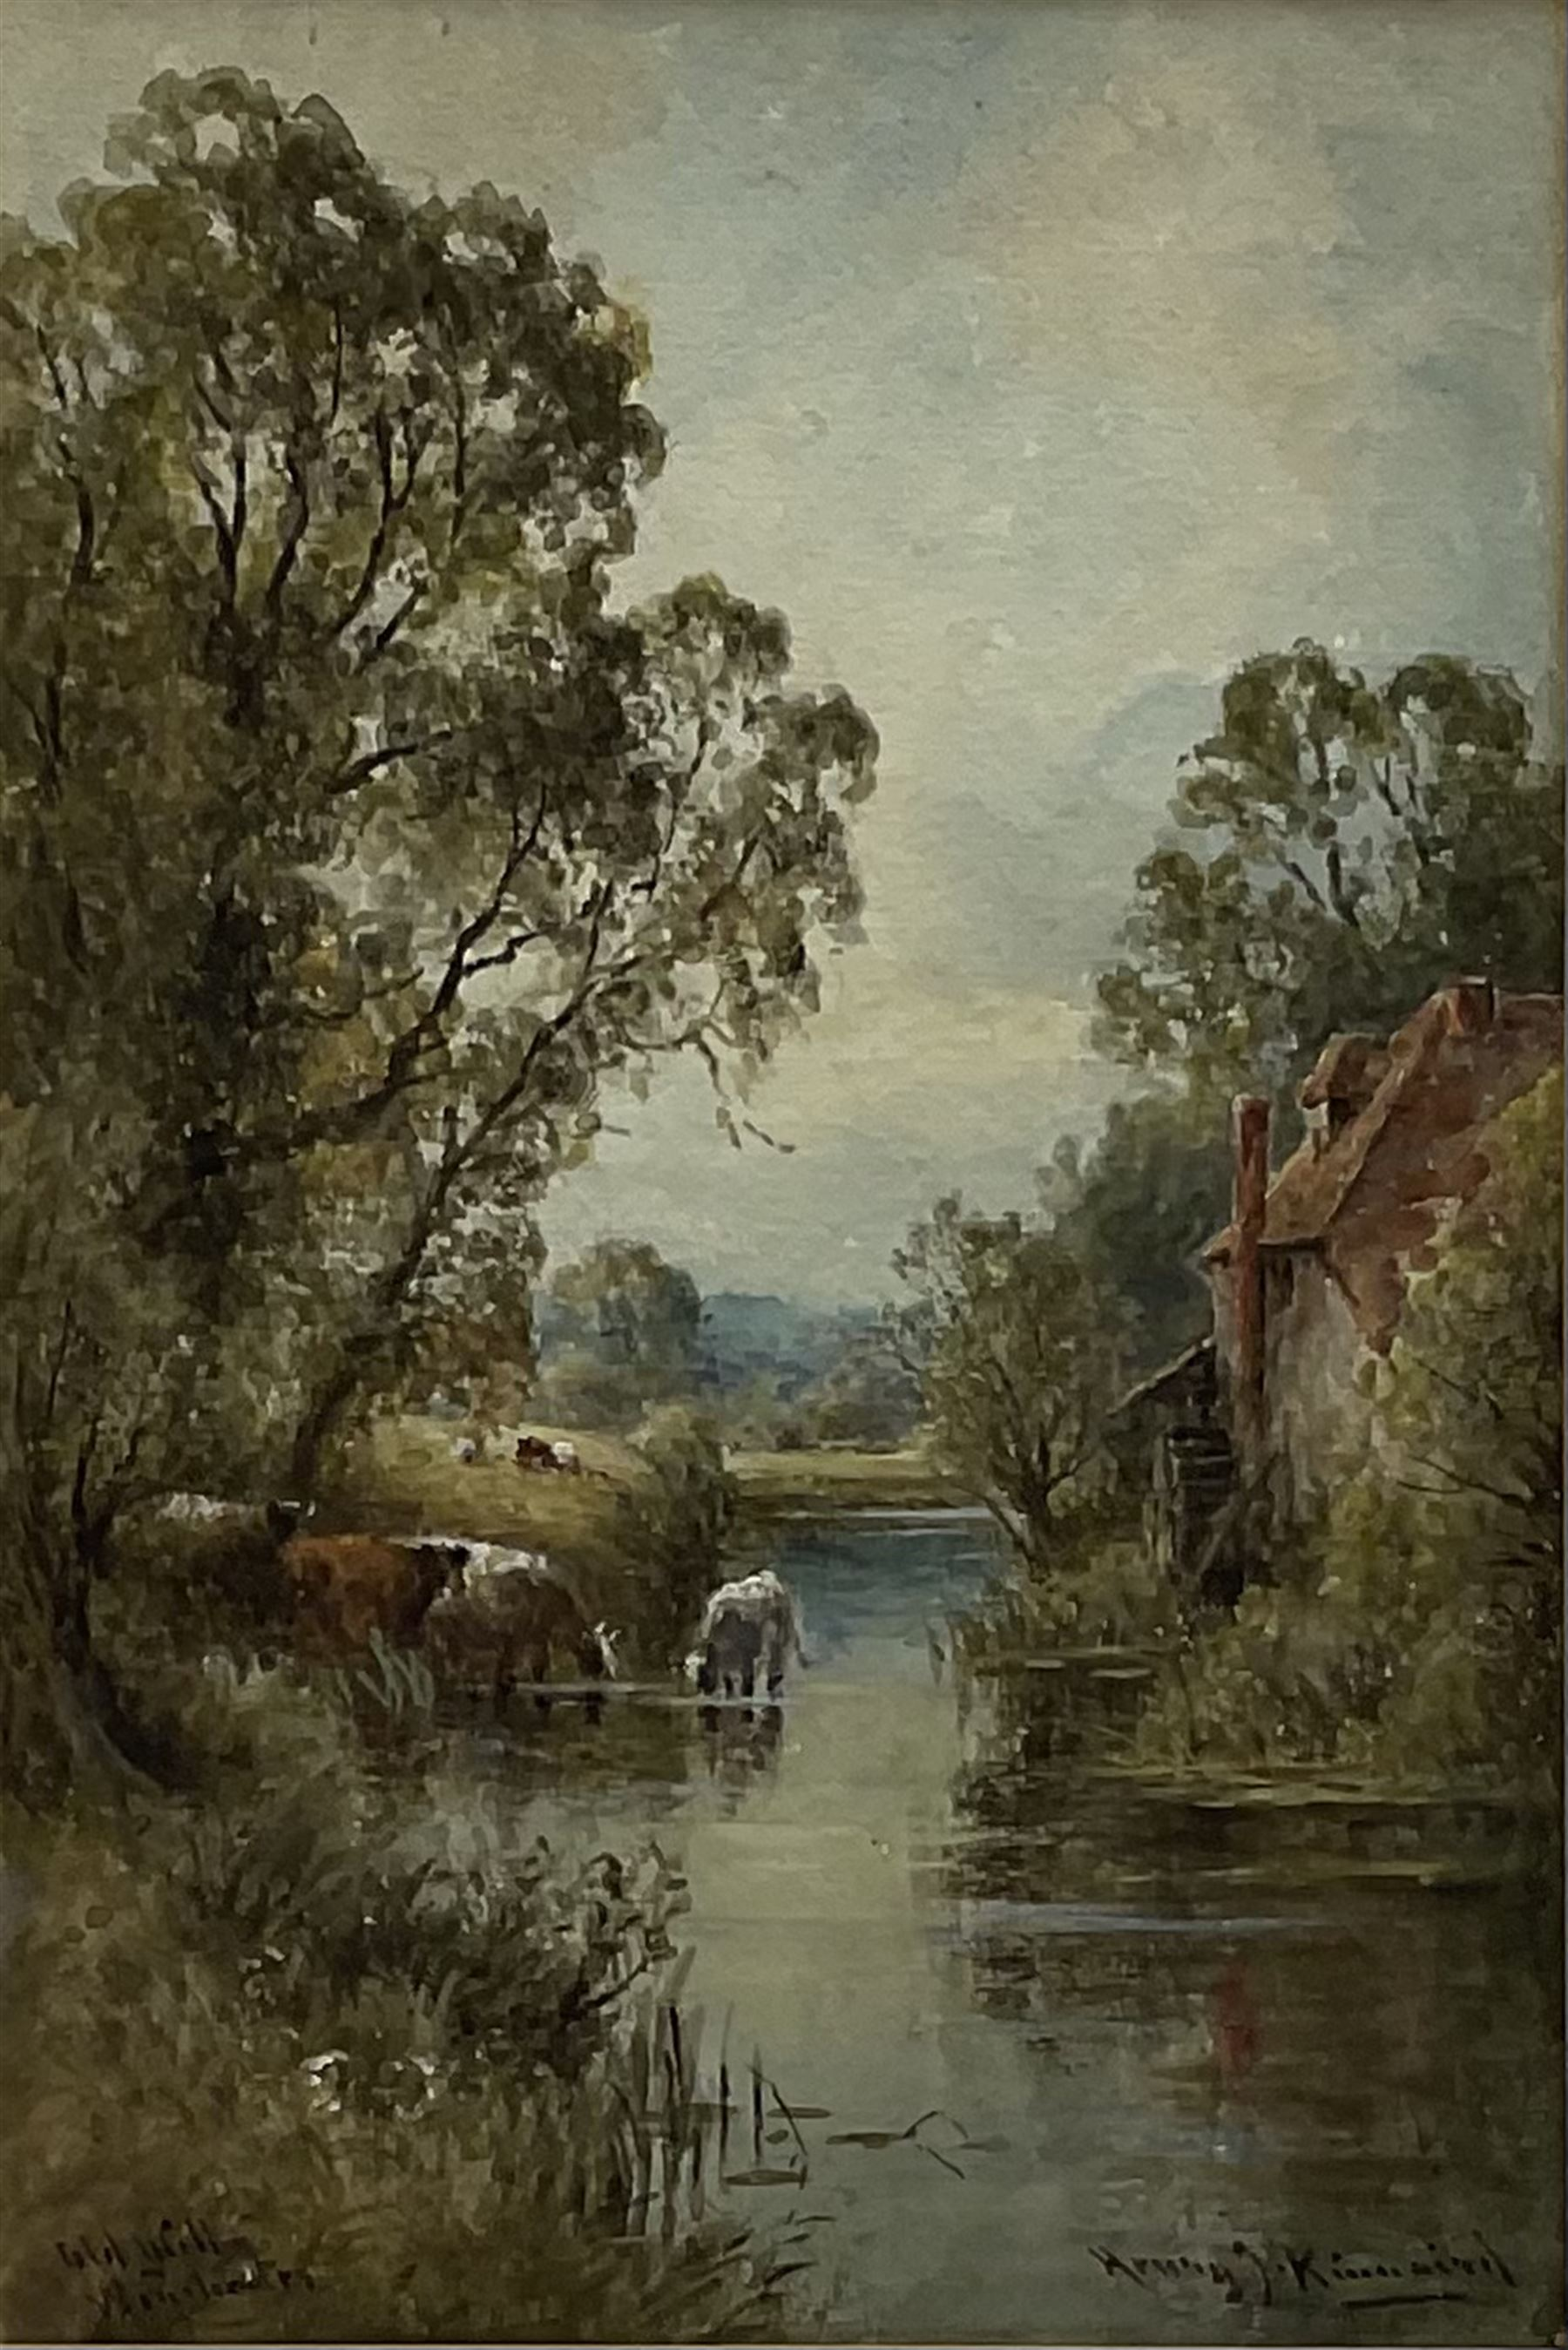 Henry J Kinnaird (British fl.1880-1920): 'Old Mill Winchester' and 'A Sussex Lane' - Image 7 of 7